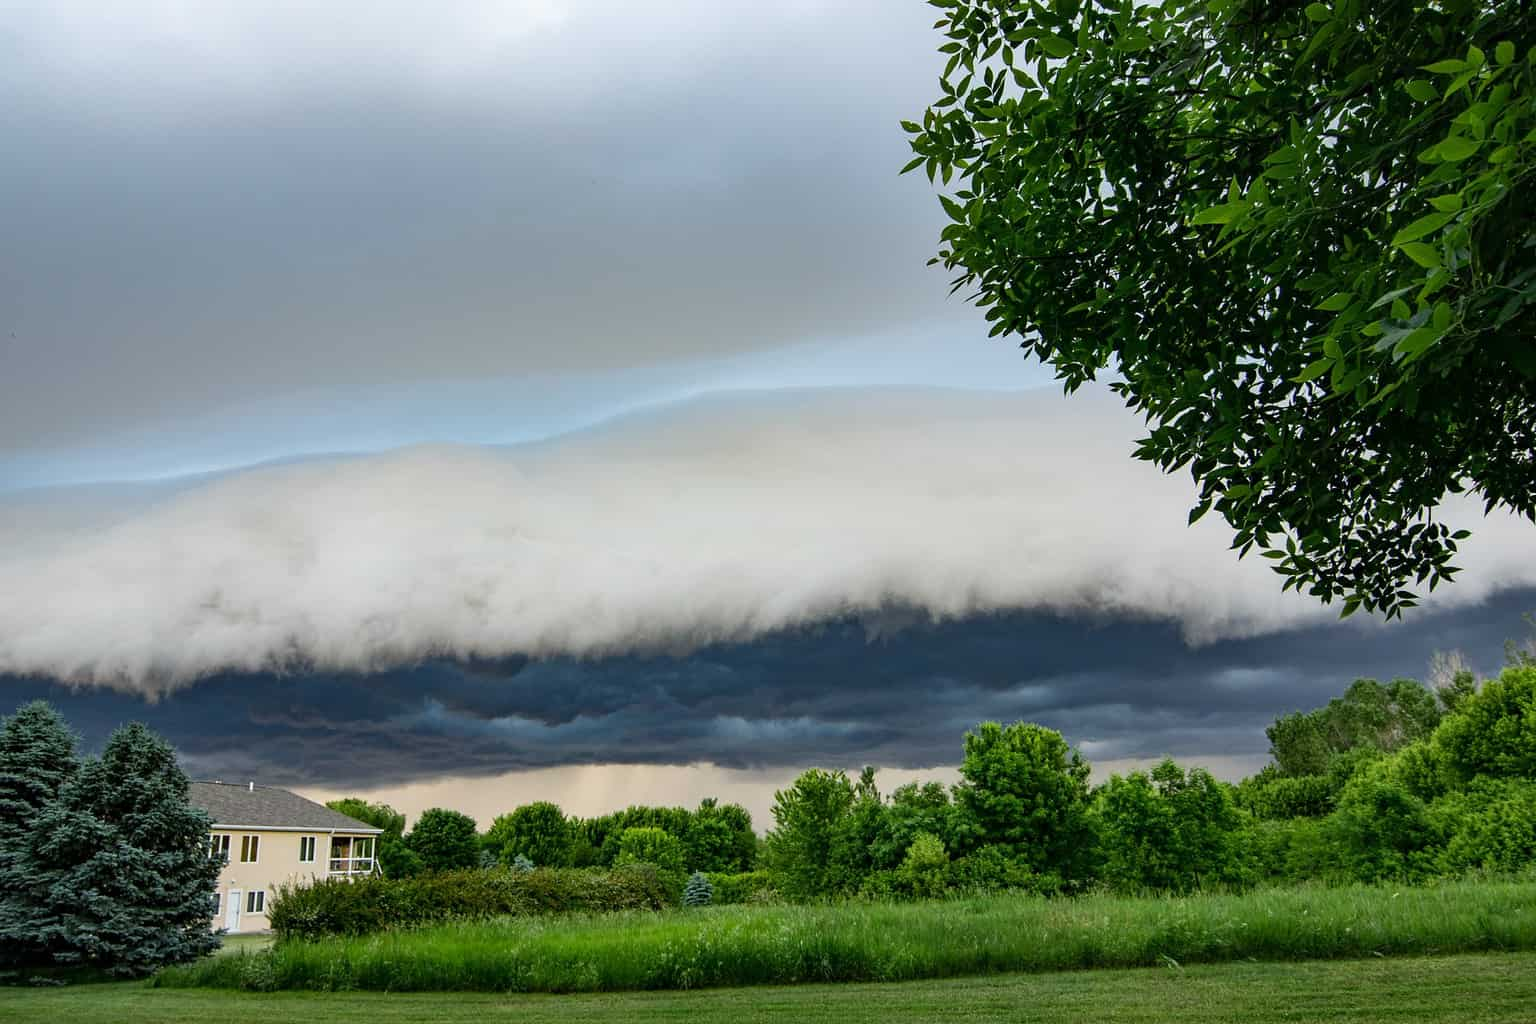 Shelf cloud #2. I ran inside to tell my kids they need to see this so we headed out and I continued to take pics.